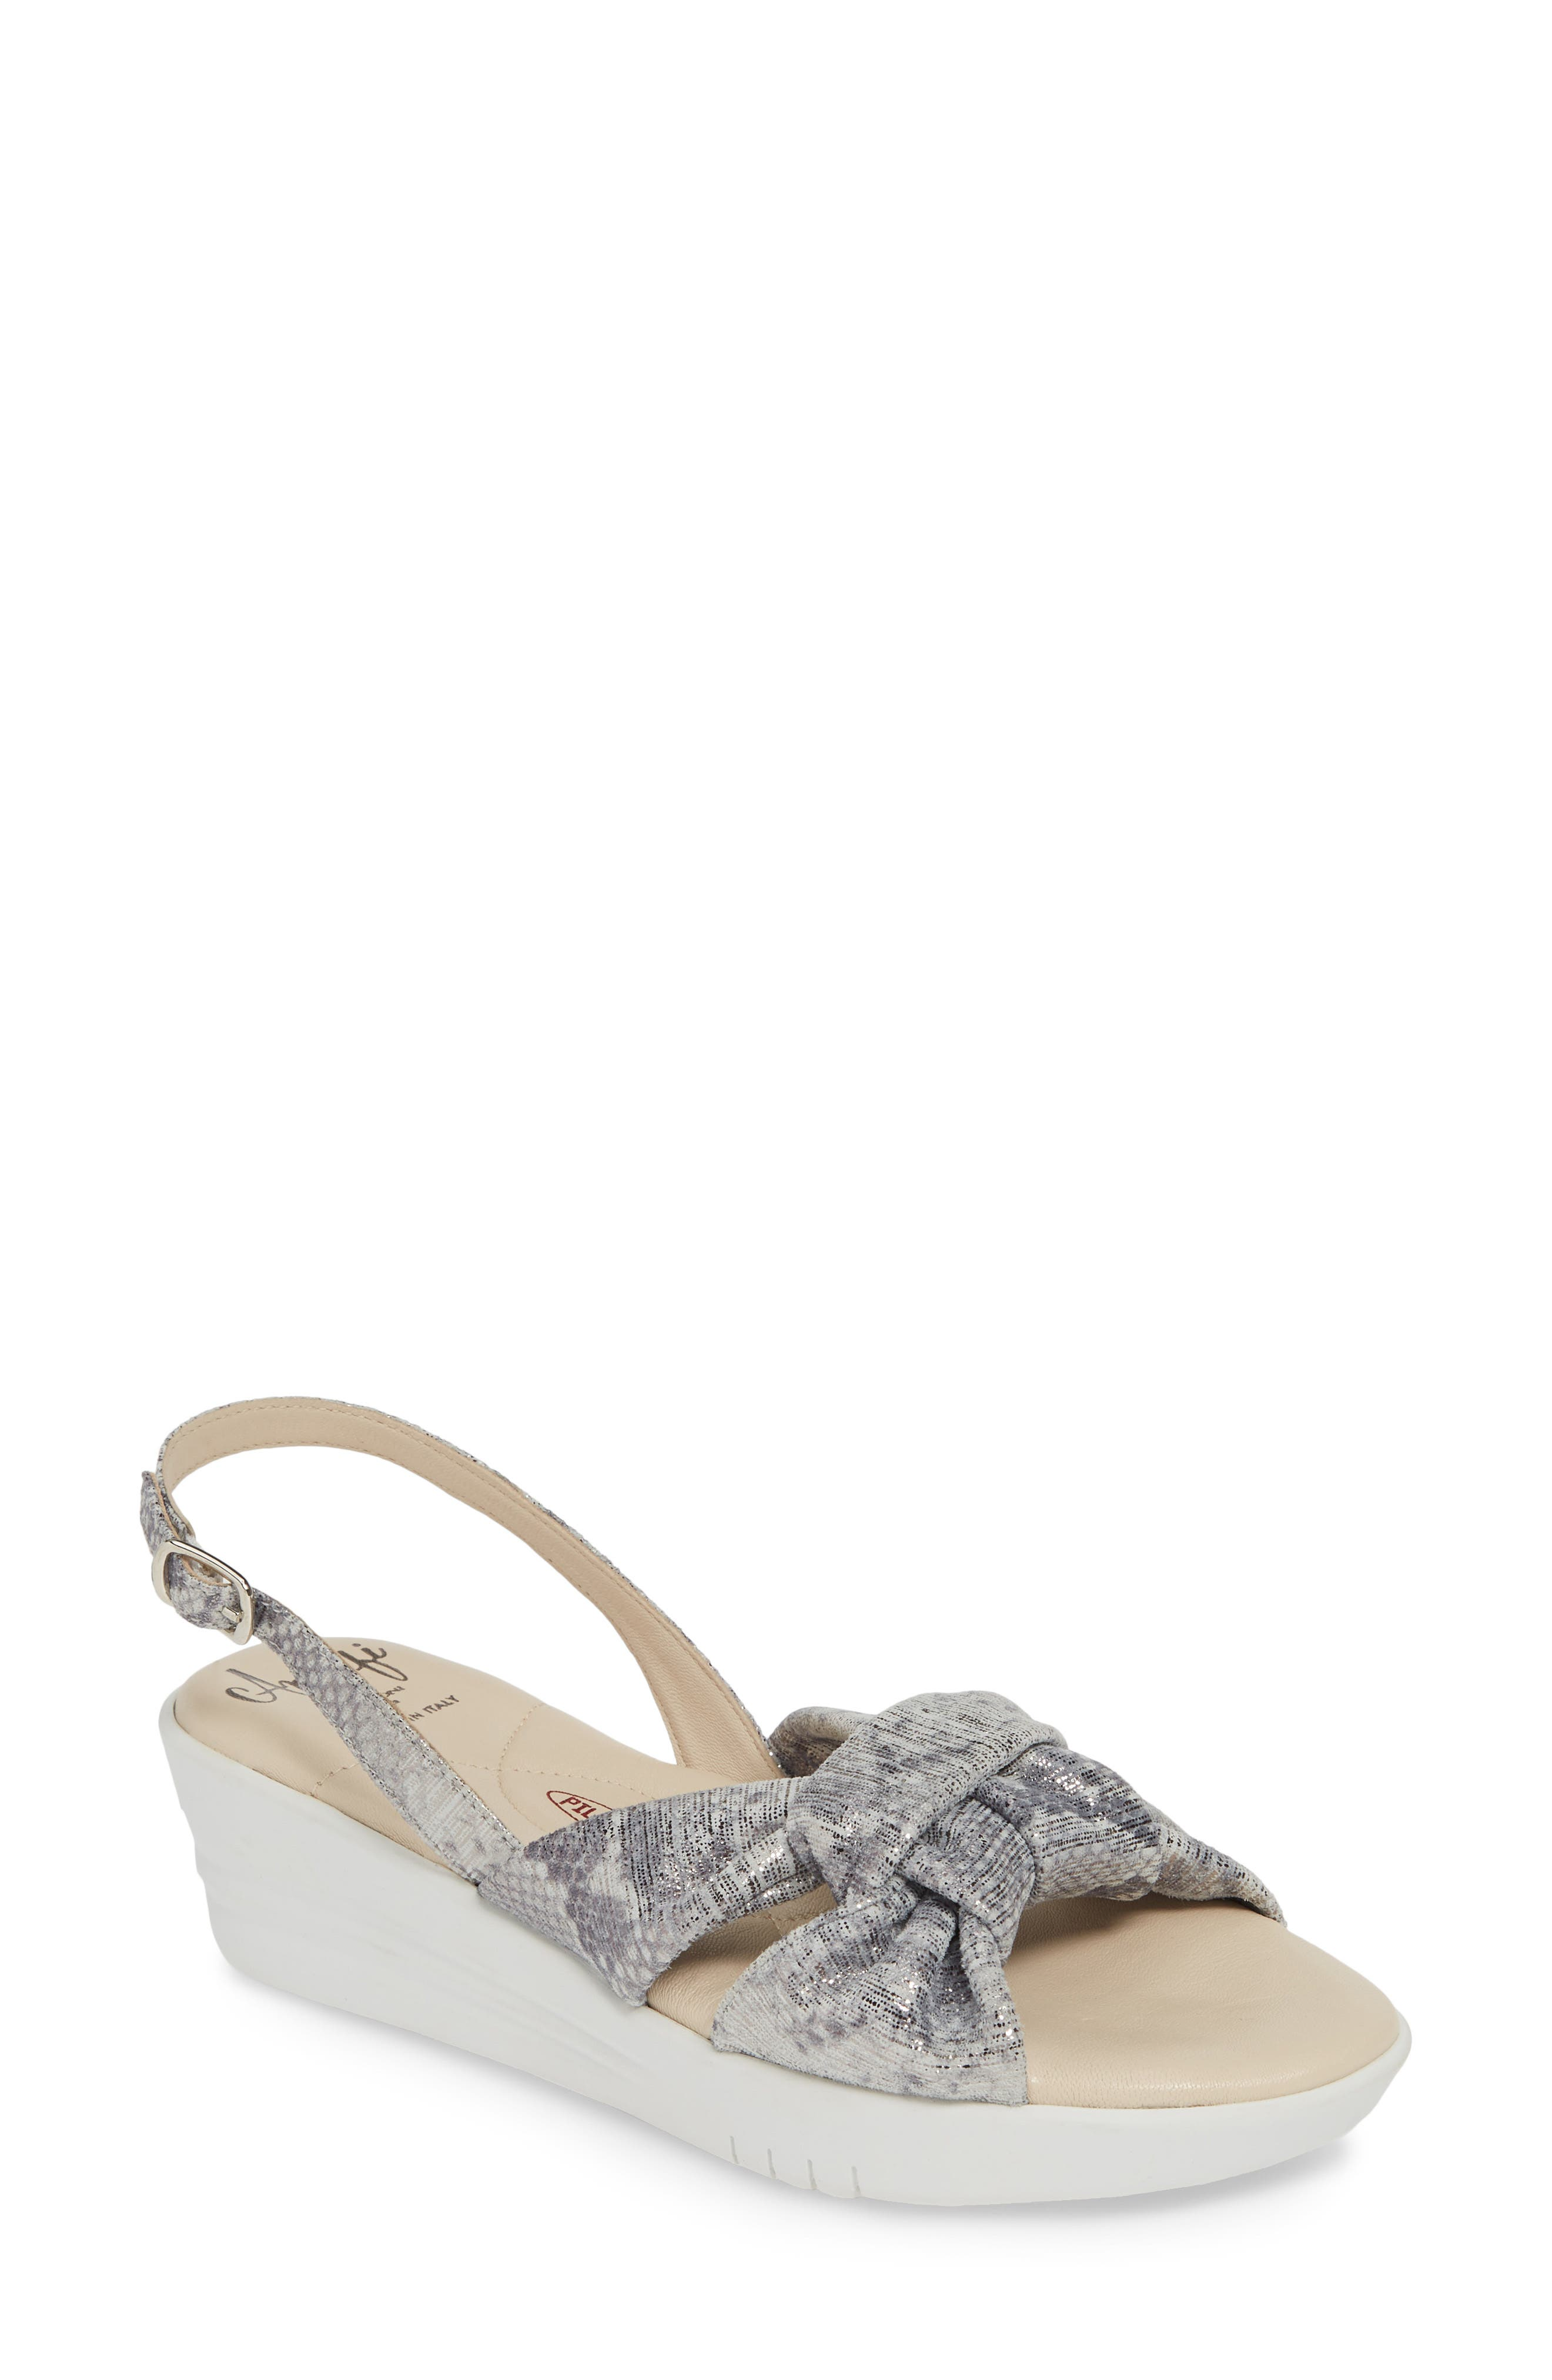 Shot through with metallic foil, this slingback sandal balances shimmery straps with a sporty wedge heel, while a cushy footbed adds comfort to the style. Style Name: Amalfi By Rangoni Gioconda Slingback Wedge Sandal (Women). Style Number: 5795959 1. Available in stores.